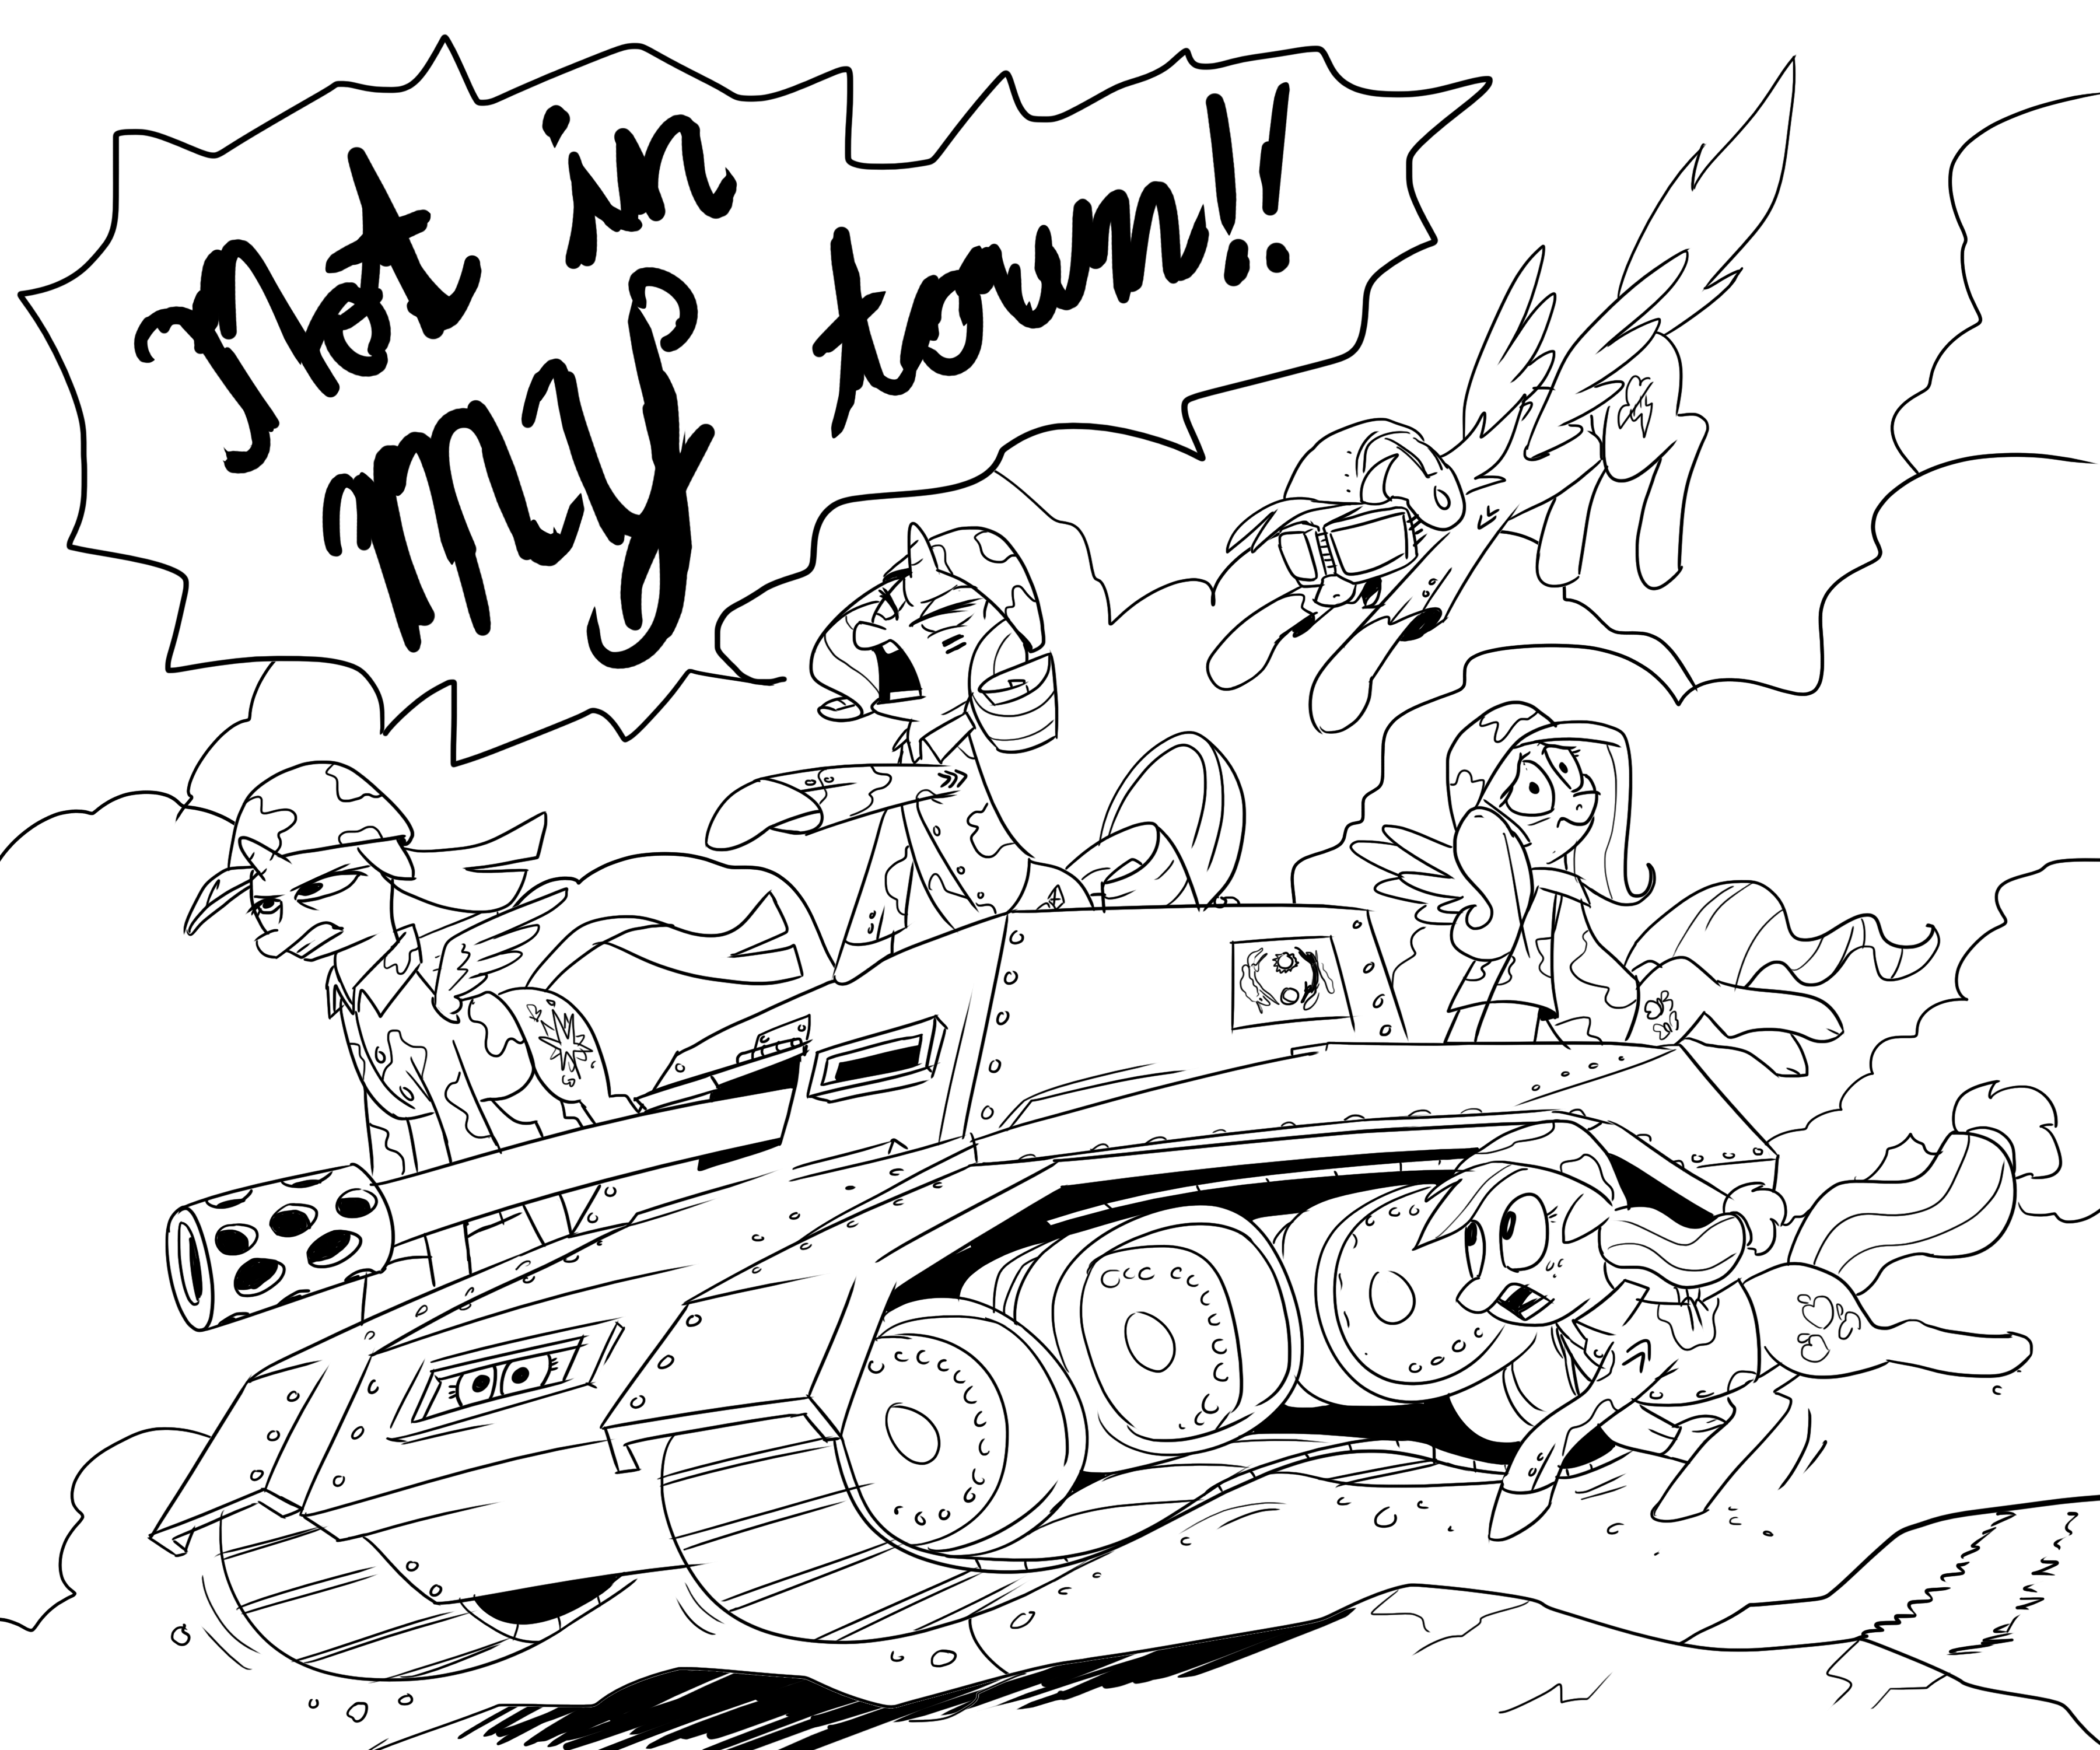 tanks_for_nothing_by_docwario-daloy3v.pn